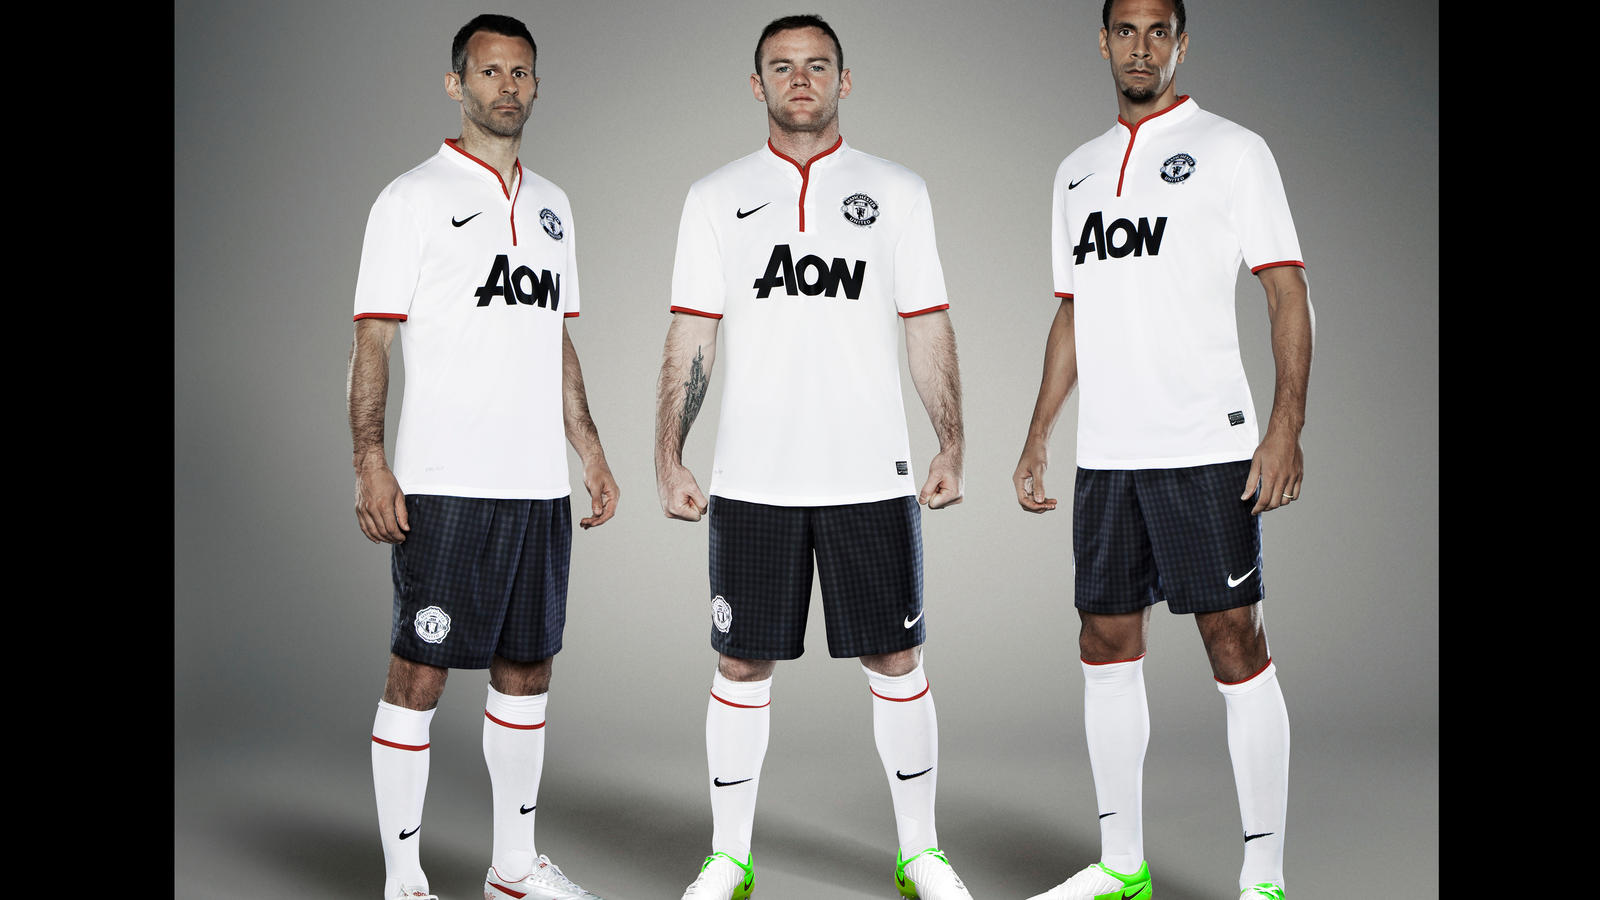 Nike Football Man U Group. Nike Football Man U Rooney Ferdinhand.  Nike Football Soccer 072012 Manchester United a23767380